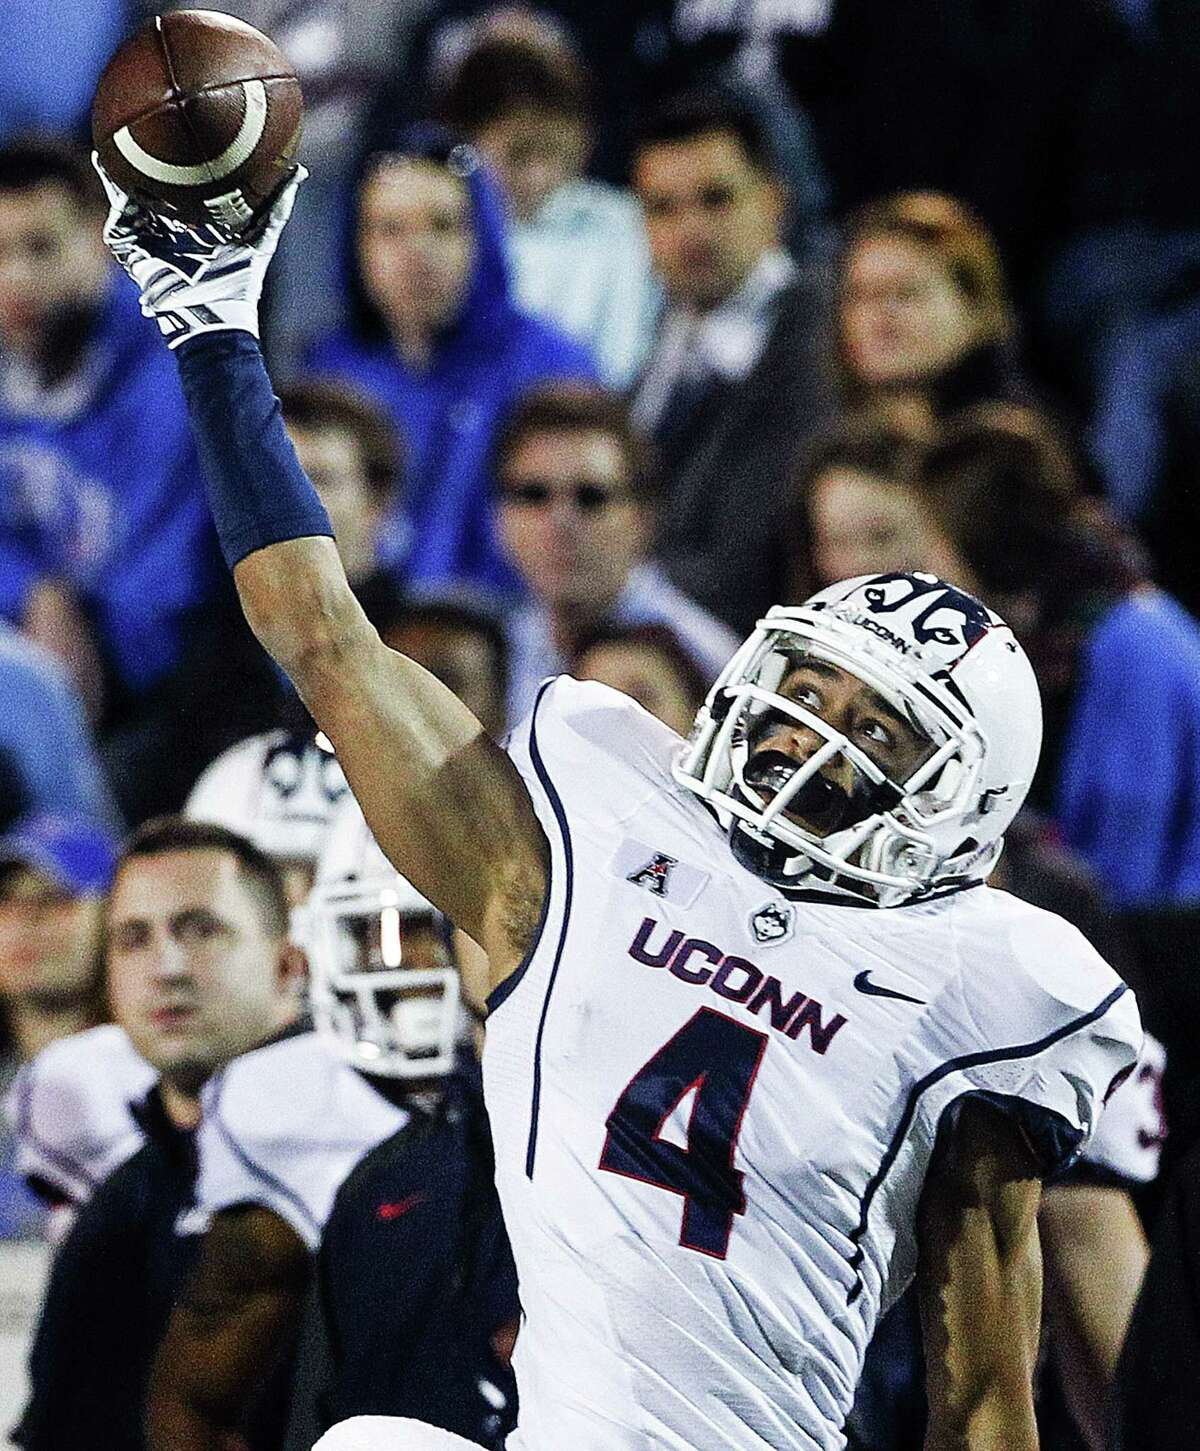 UConn senior receiver Deshon Foxx makes a one-handed catch against Memphis during Saturday's game in Memphis, Tenn.